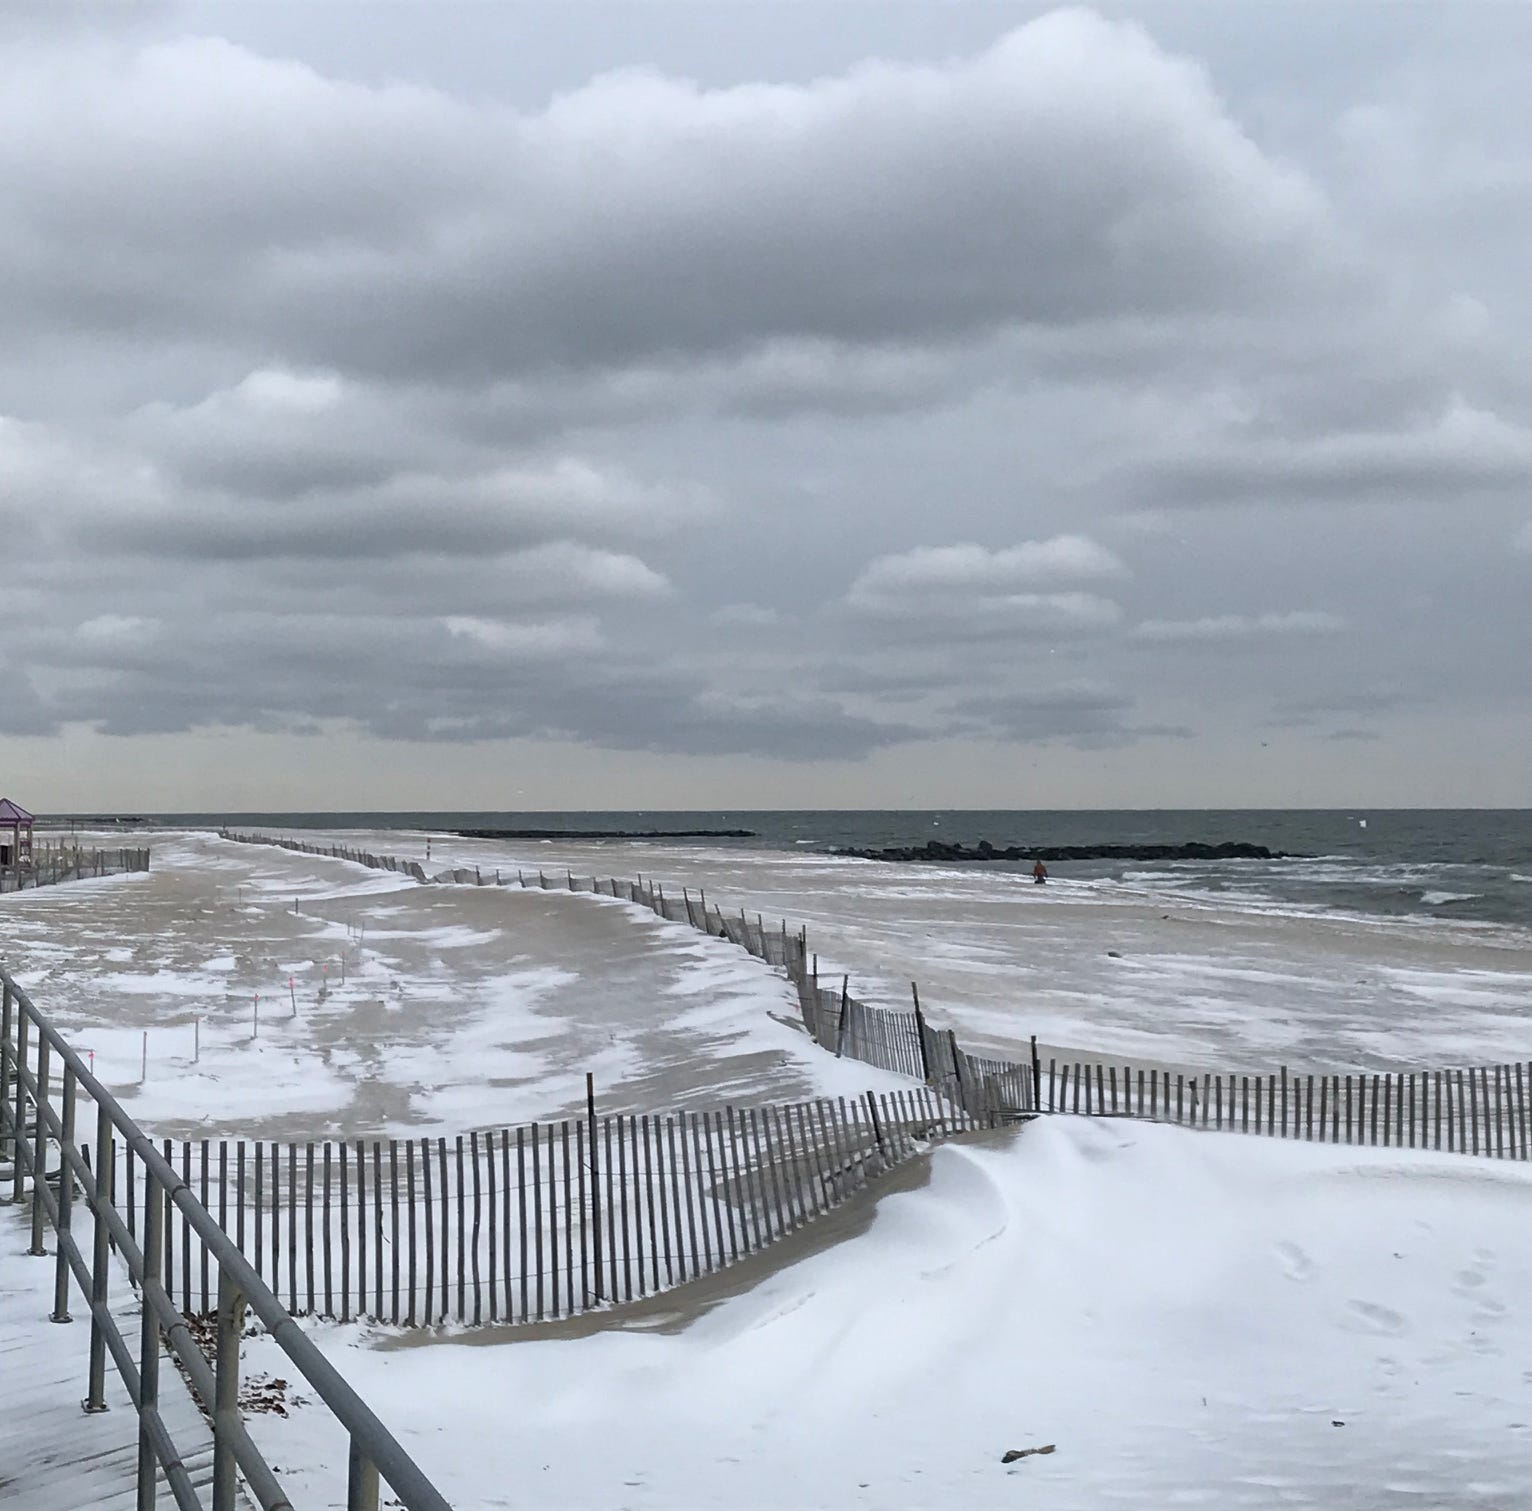 Light snow mixes with sand north of Convention Hall in Asbury Park on Sunday, Jan. 13, 2019.